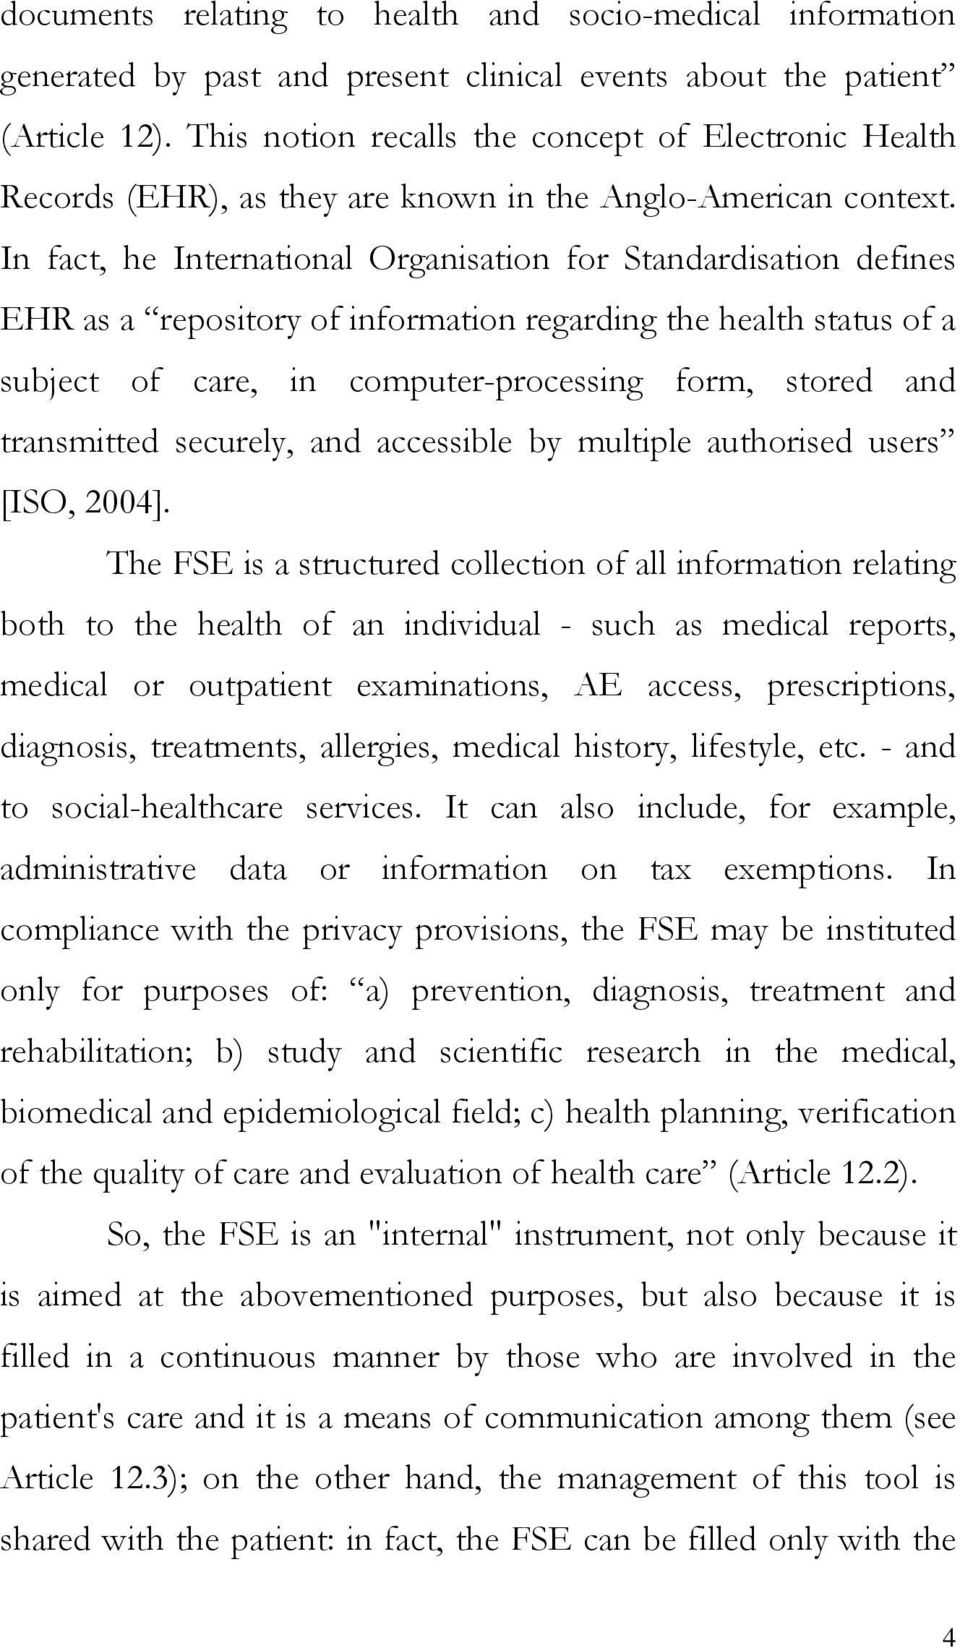 In fact, he International Organisation for Standardisation defines EHR as a repository of information regarding the health status of a subject of care, in computer-processing form, stored and